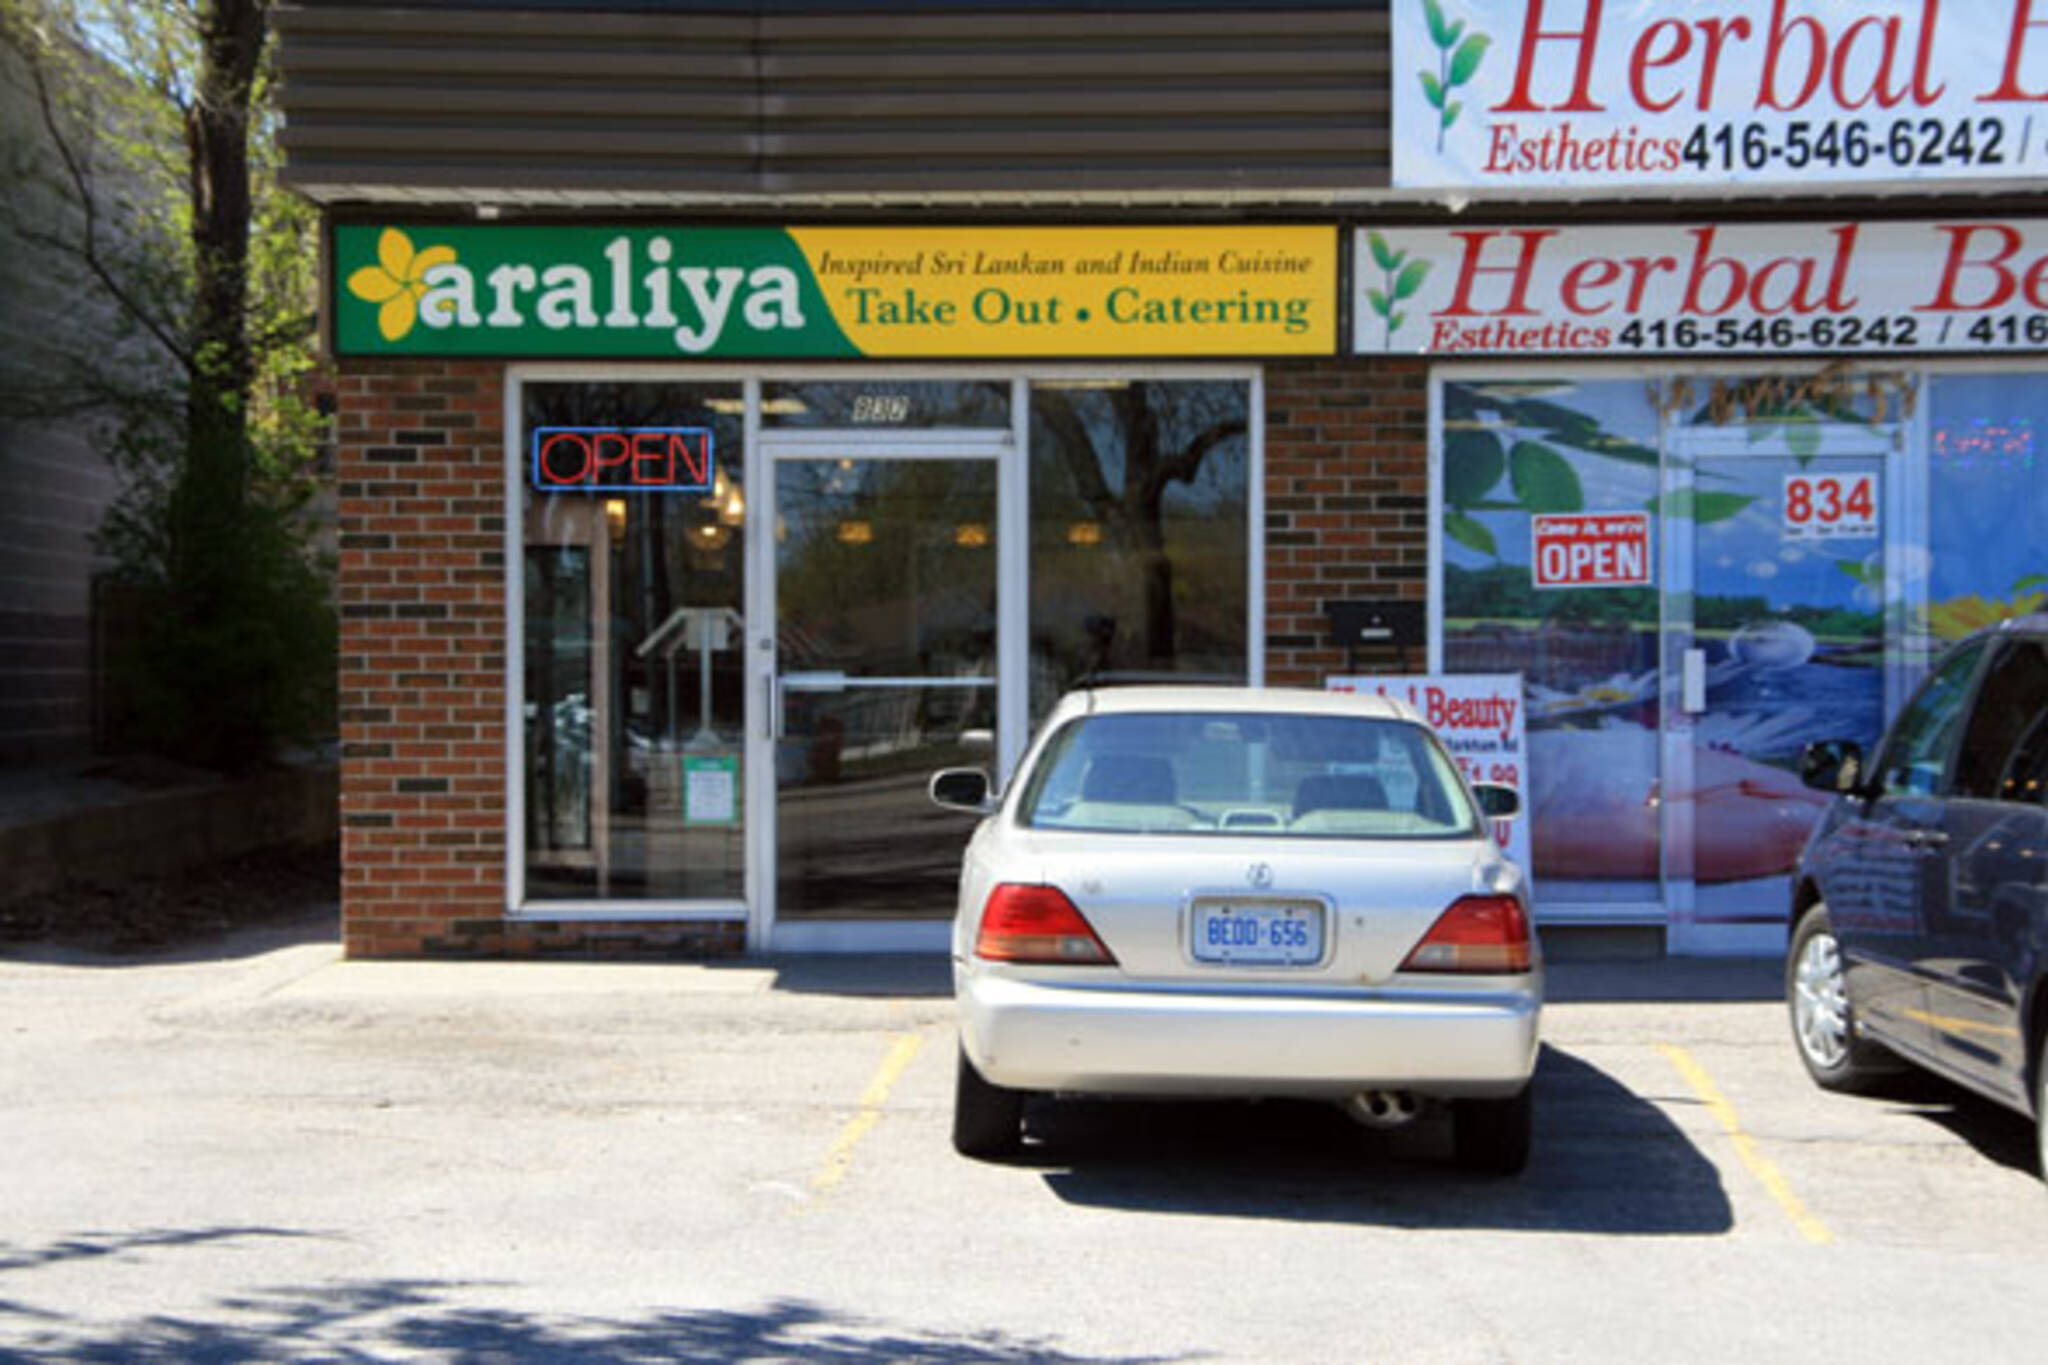 Araliya Takeout and Catering